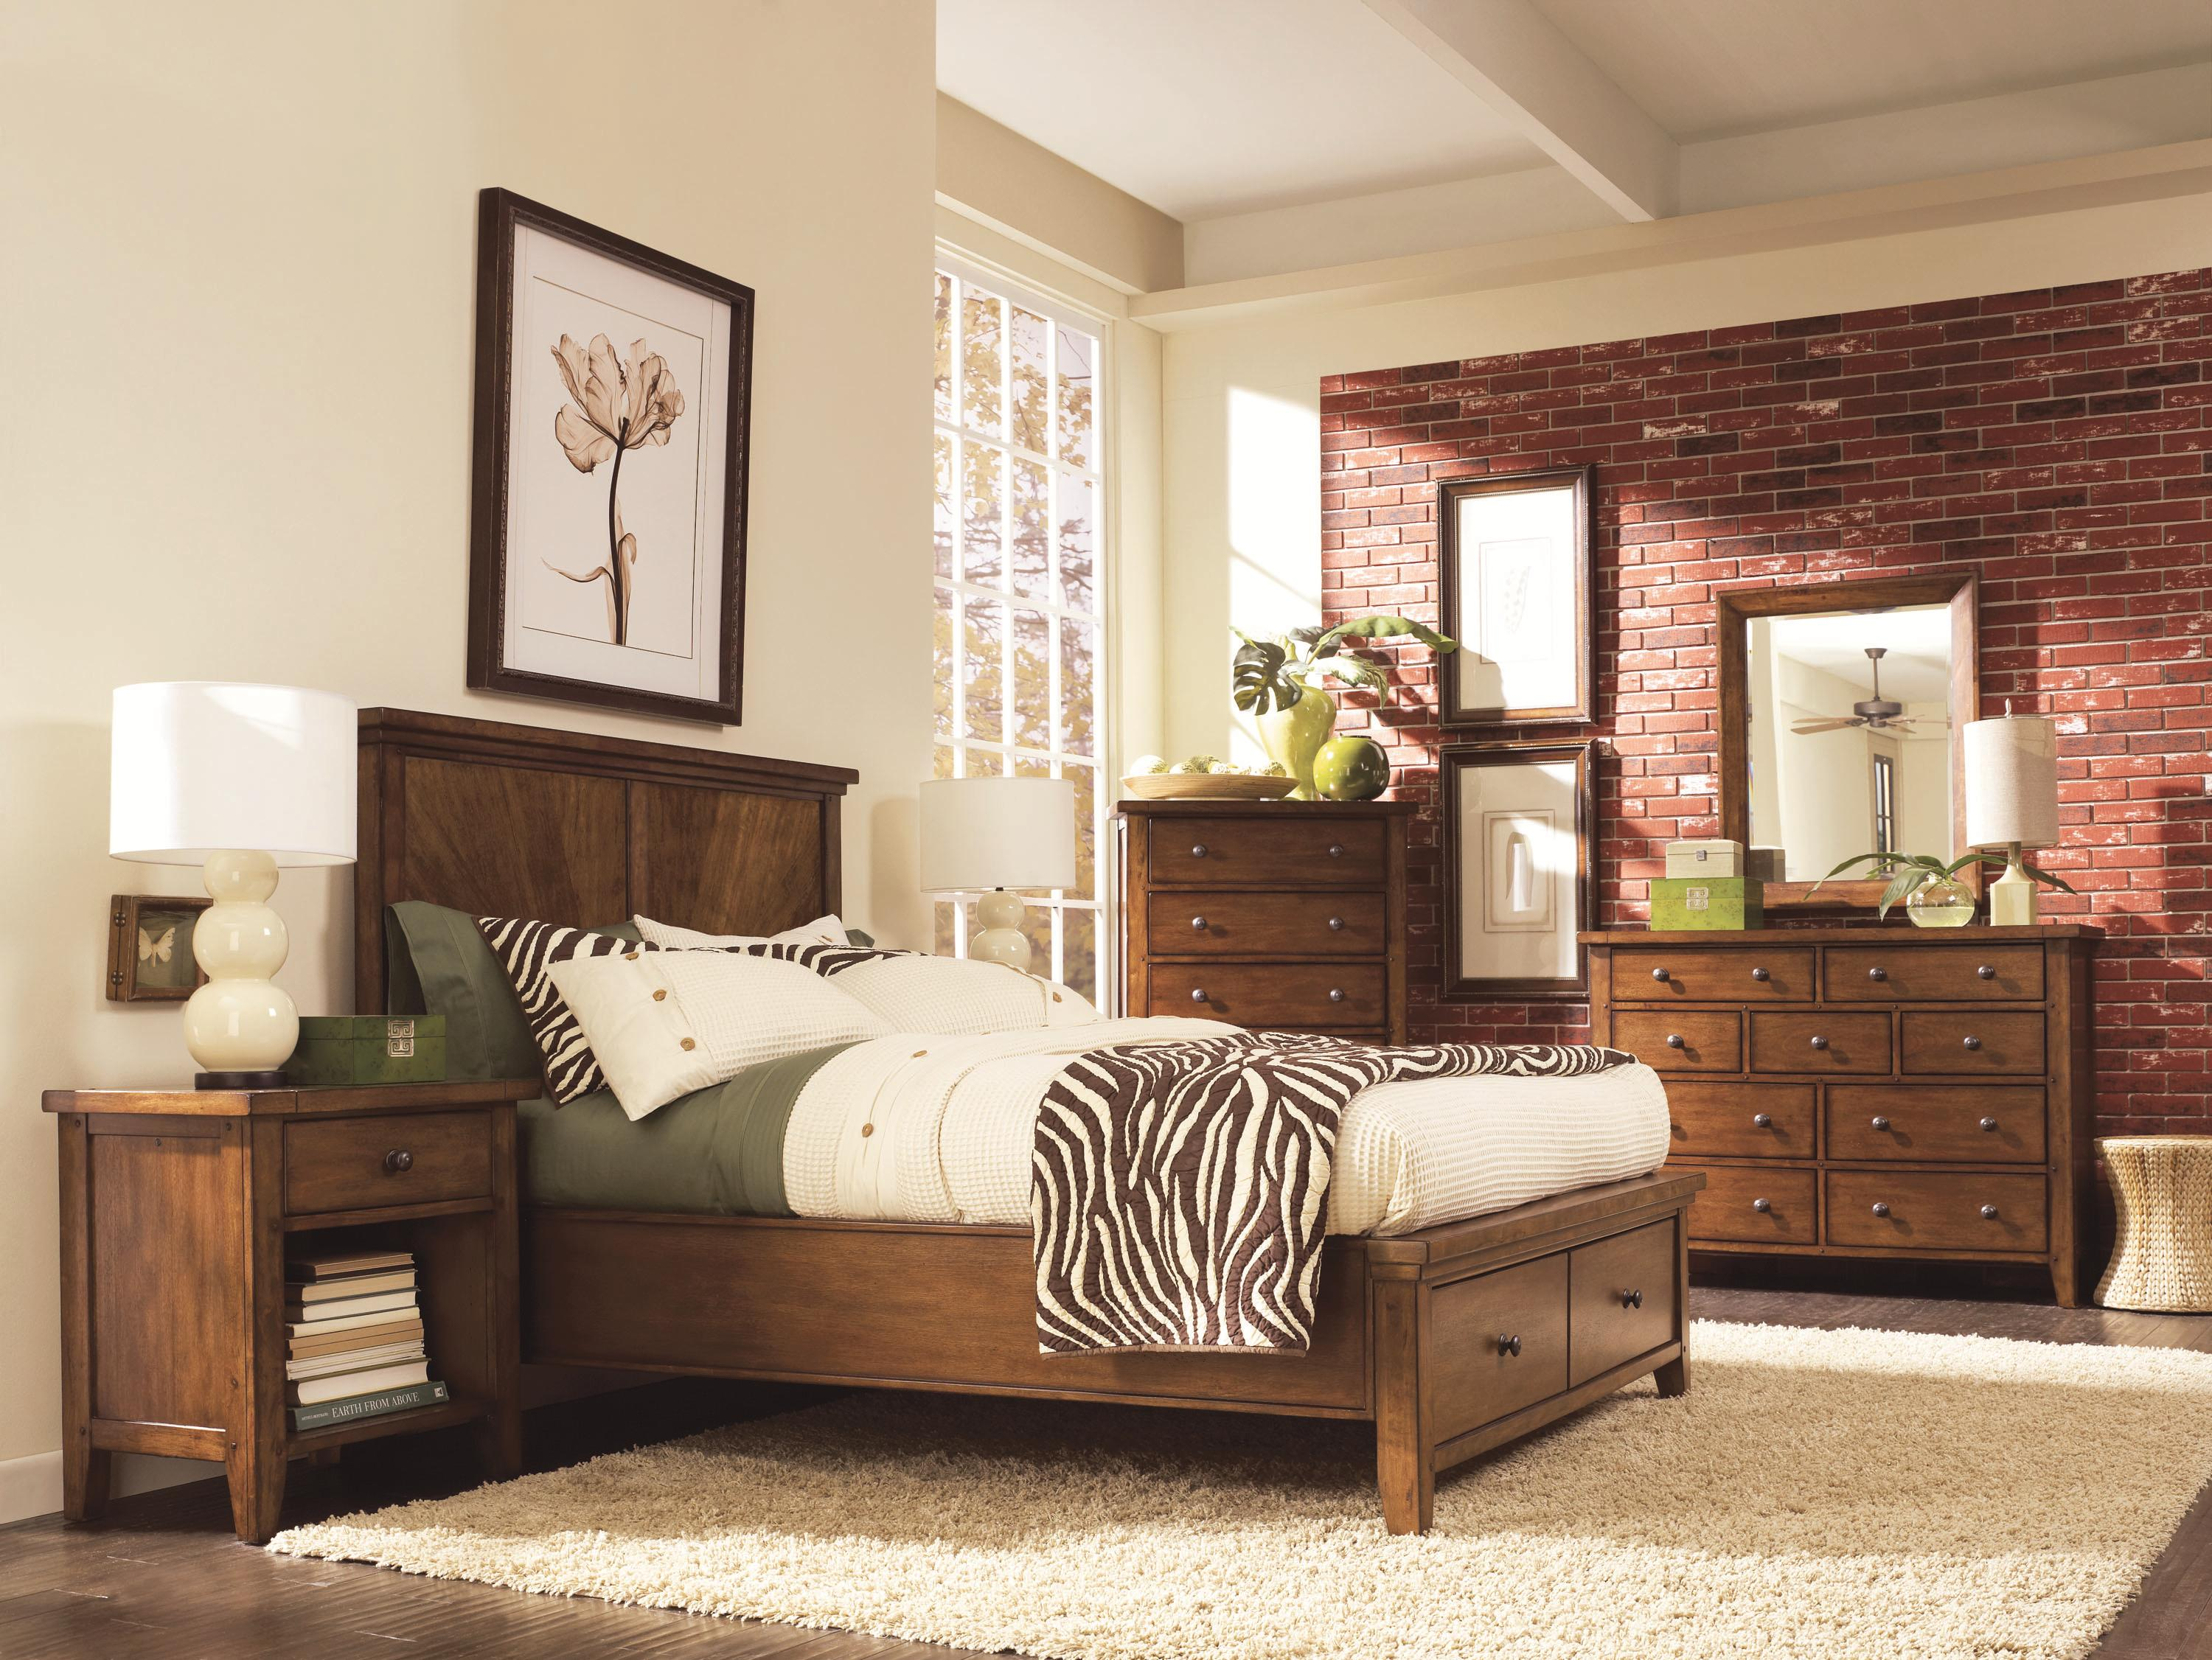 Aspenhome Cross Country Queen Bedroom Group - Item Number: IMR Q Bedroom Group 1